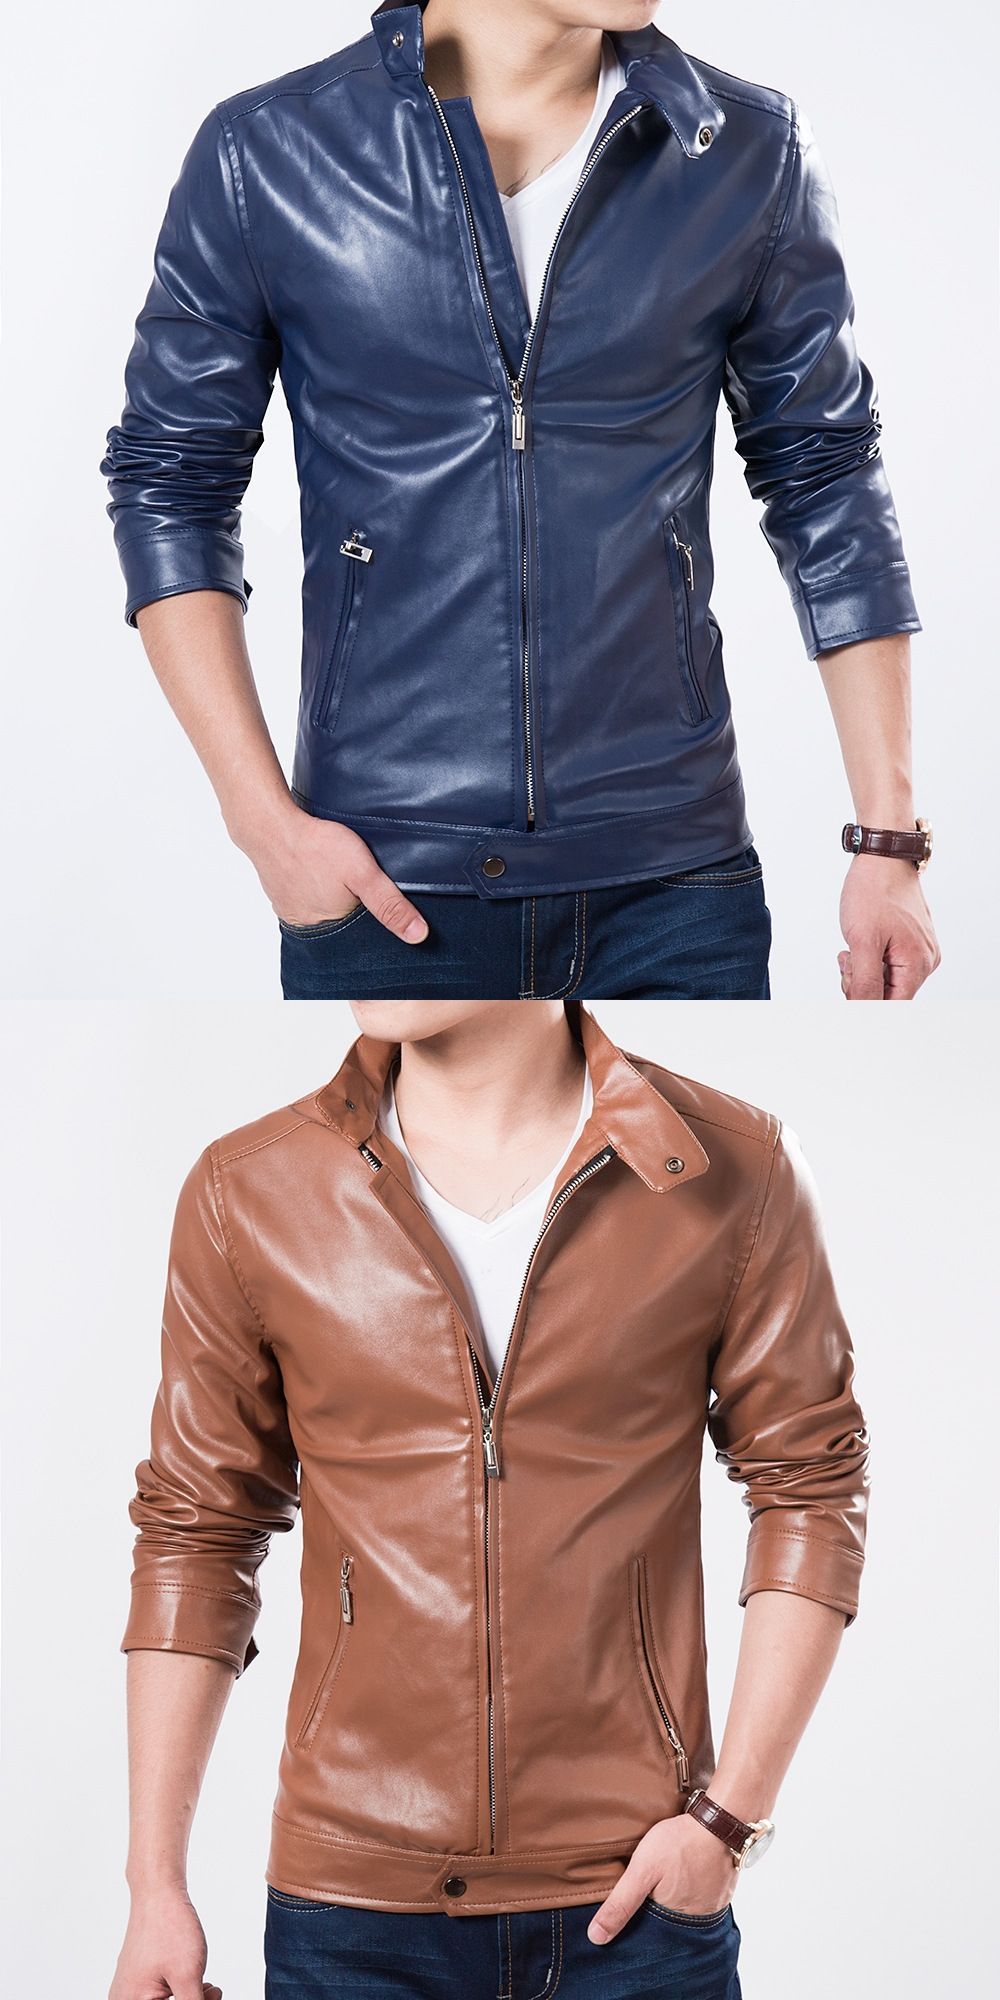 New Sales Top Men Fashion Spring Leather Jacket Solid Slim Stand Collar Motorcycle Style Man Outwear Spring Leather Jacket Motorcycle Fashion Men Casual Coat [ 2000 x 1000 Pixel ]